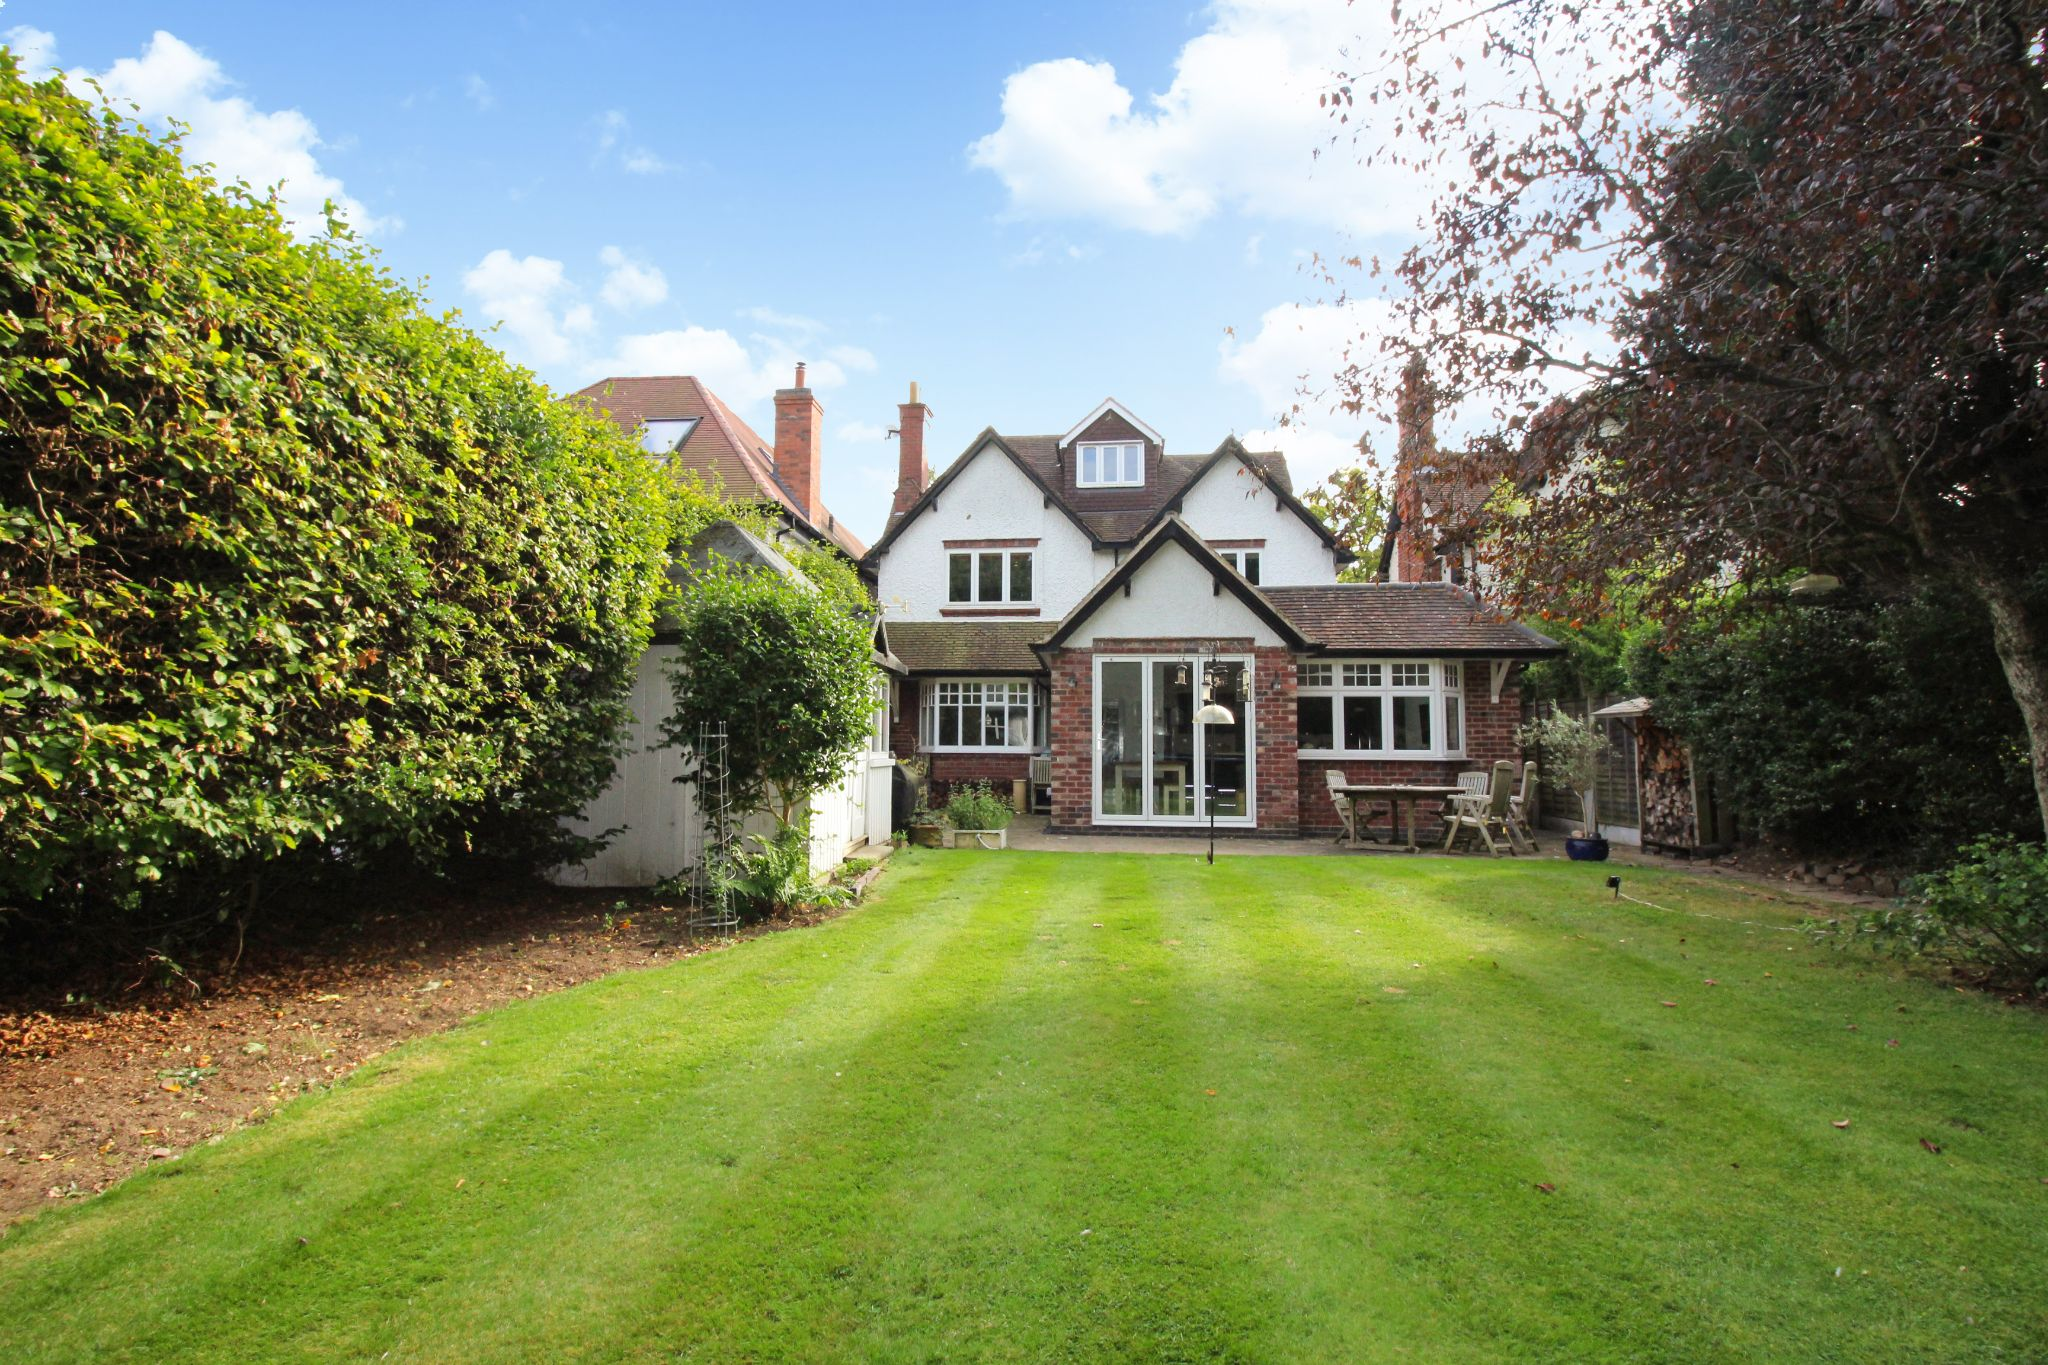 5 bedroom detached house For Sale in Solihull - Photograph 19.